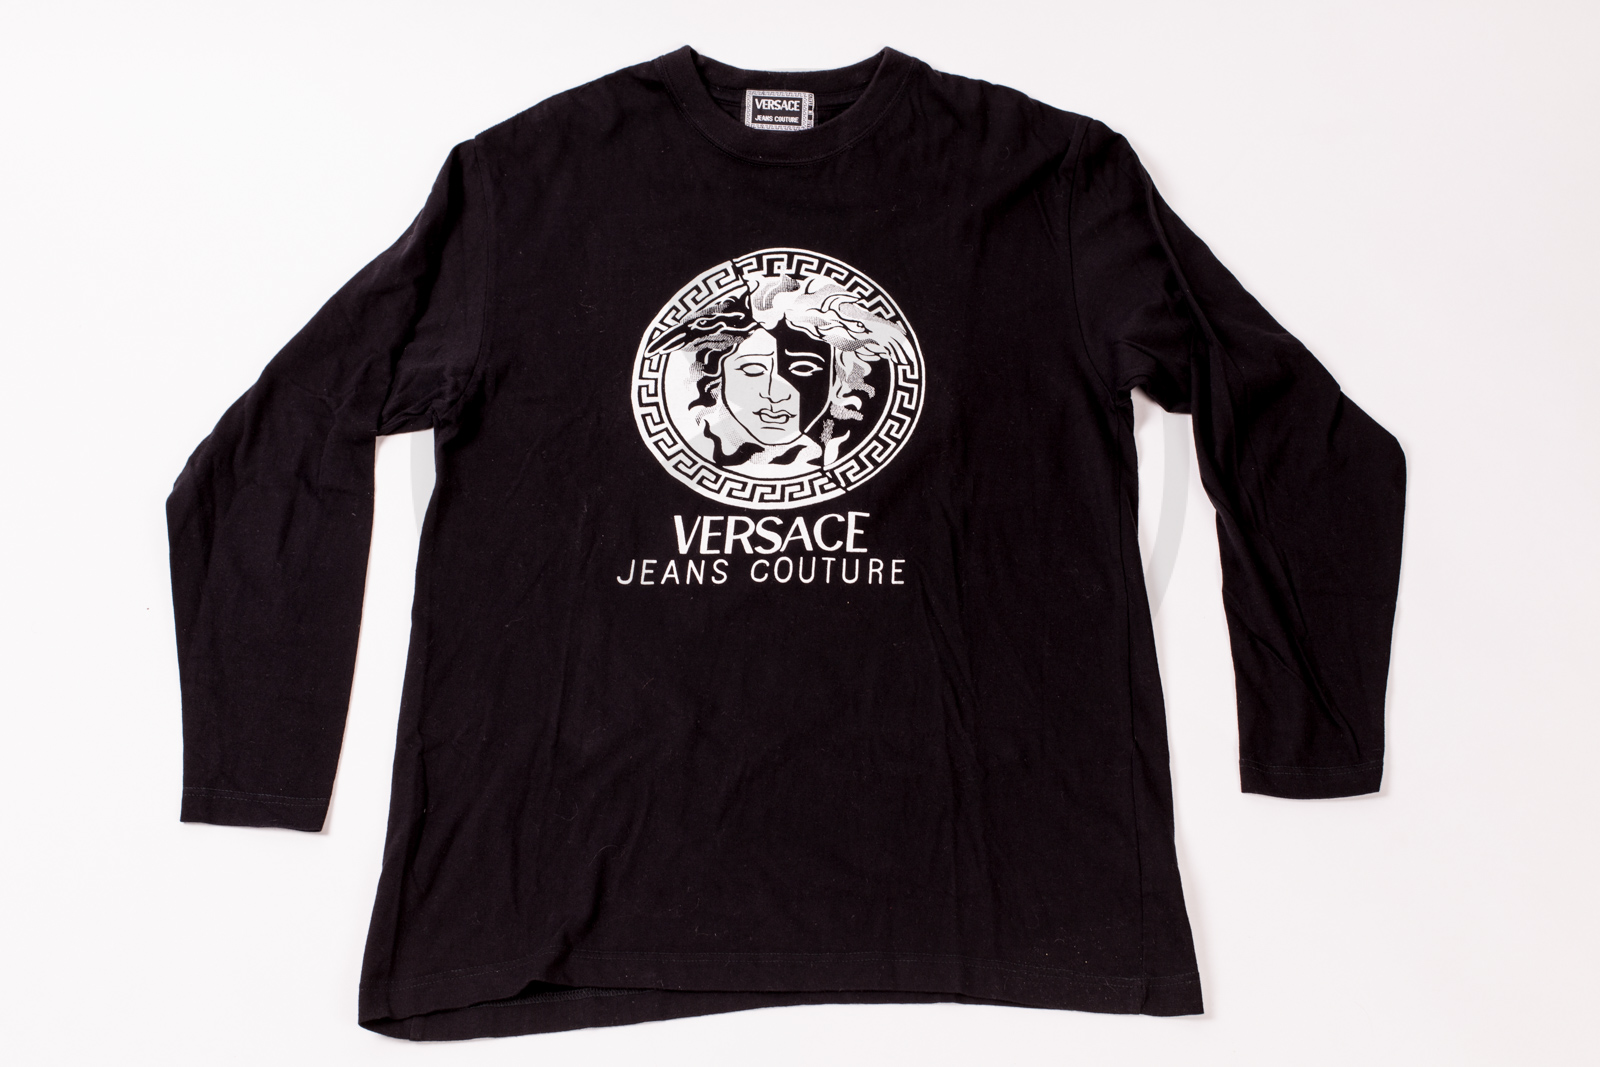 19643949 1; 2; 3; 4; 5. Previous; Next. HomeSOLD OUTVersace Jeans Couture long sleeve  shirt